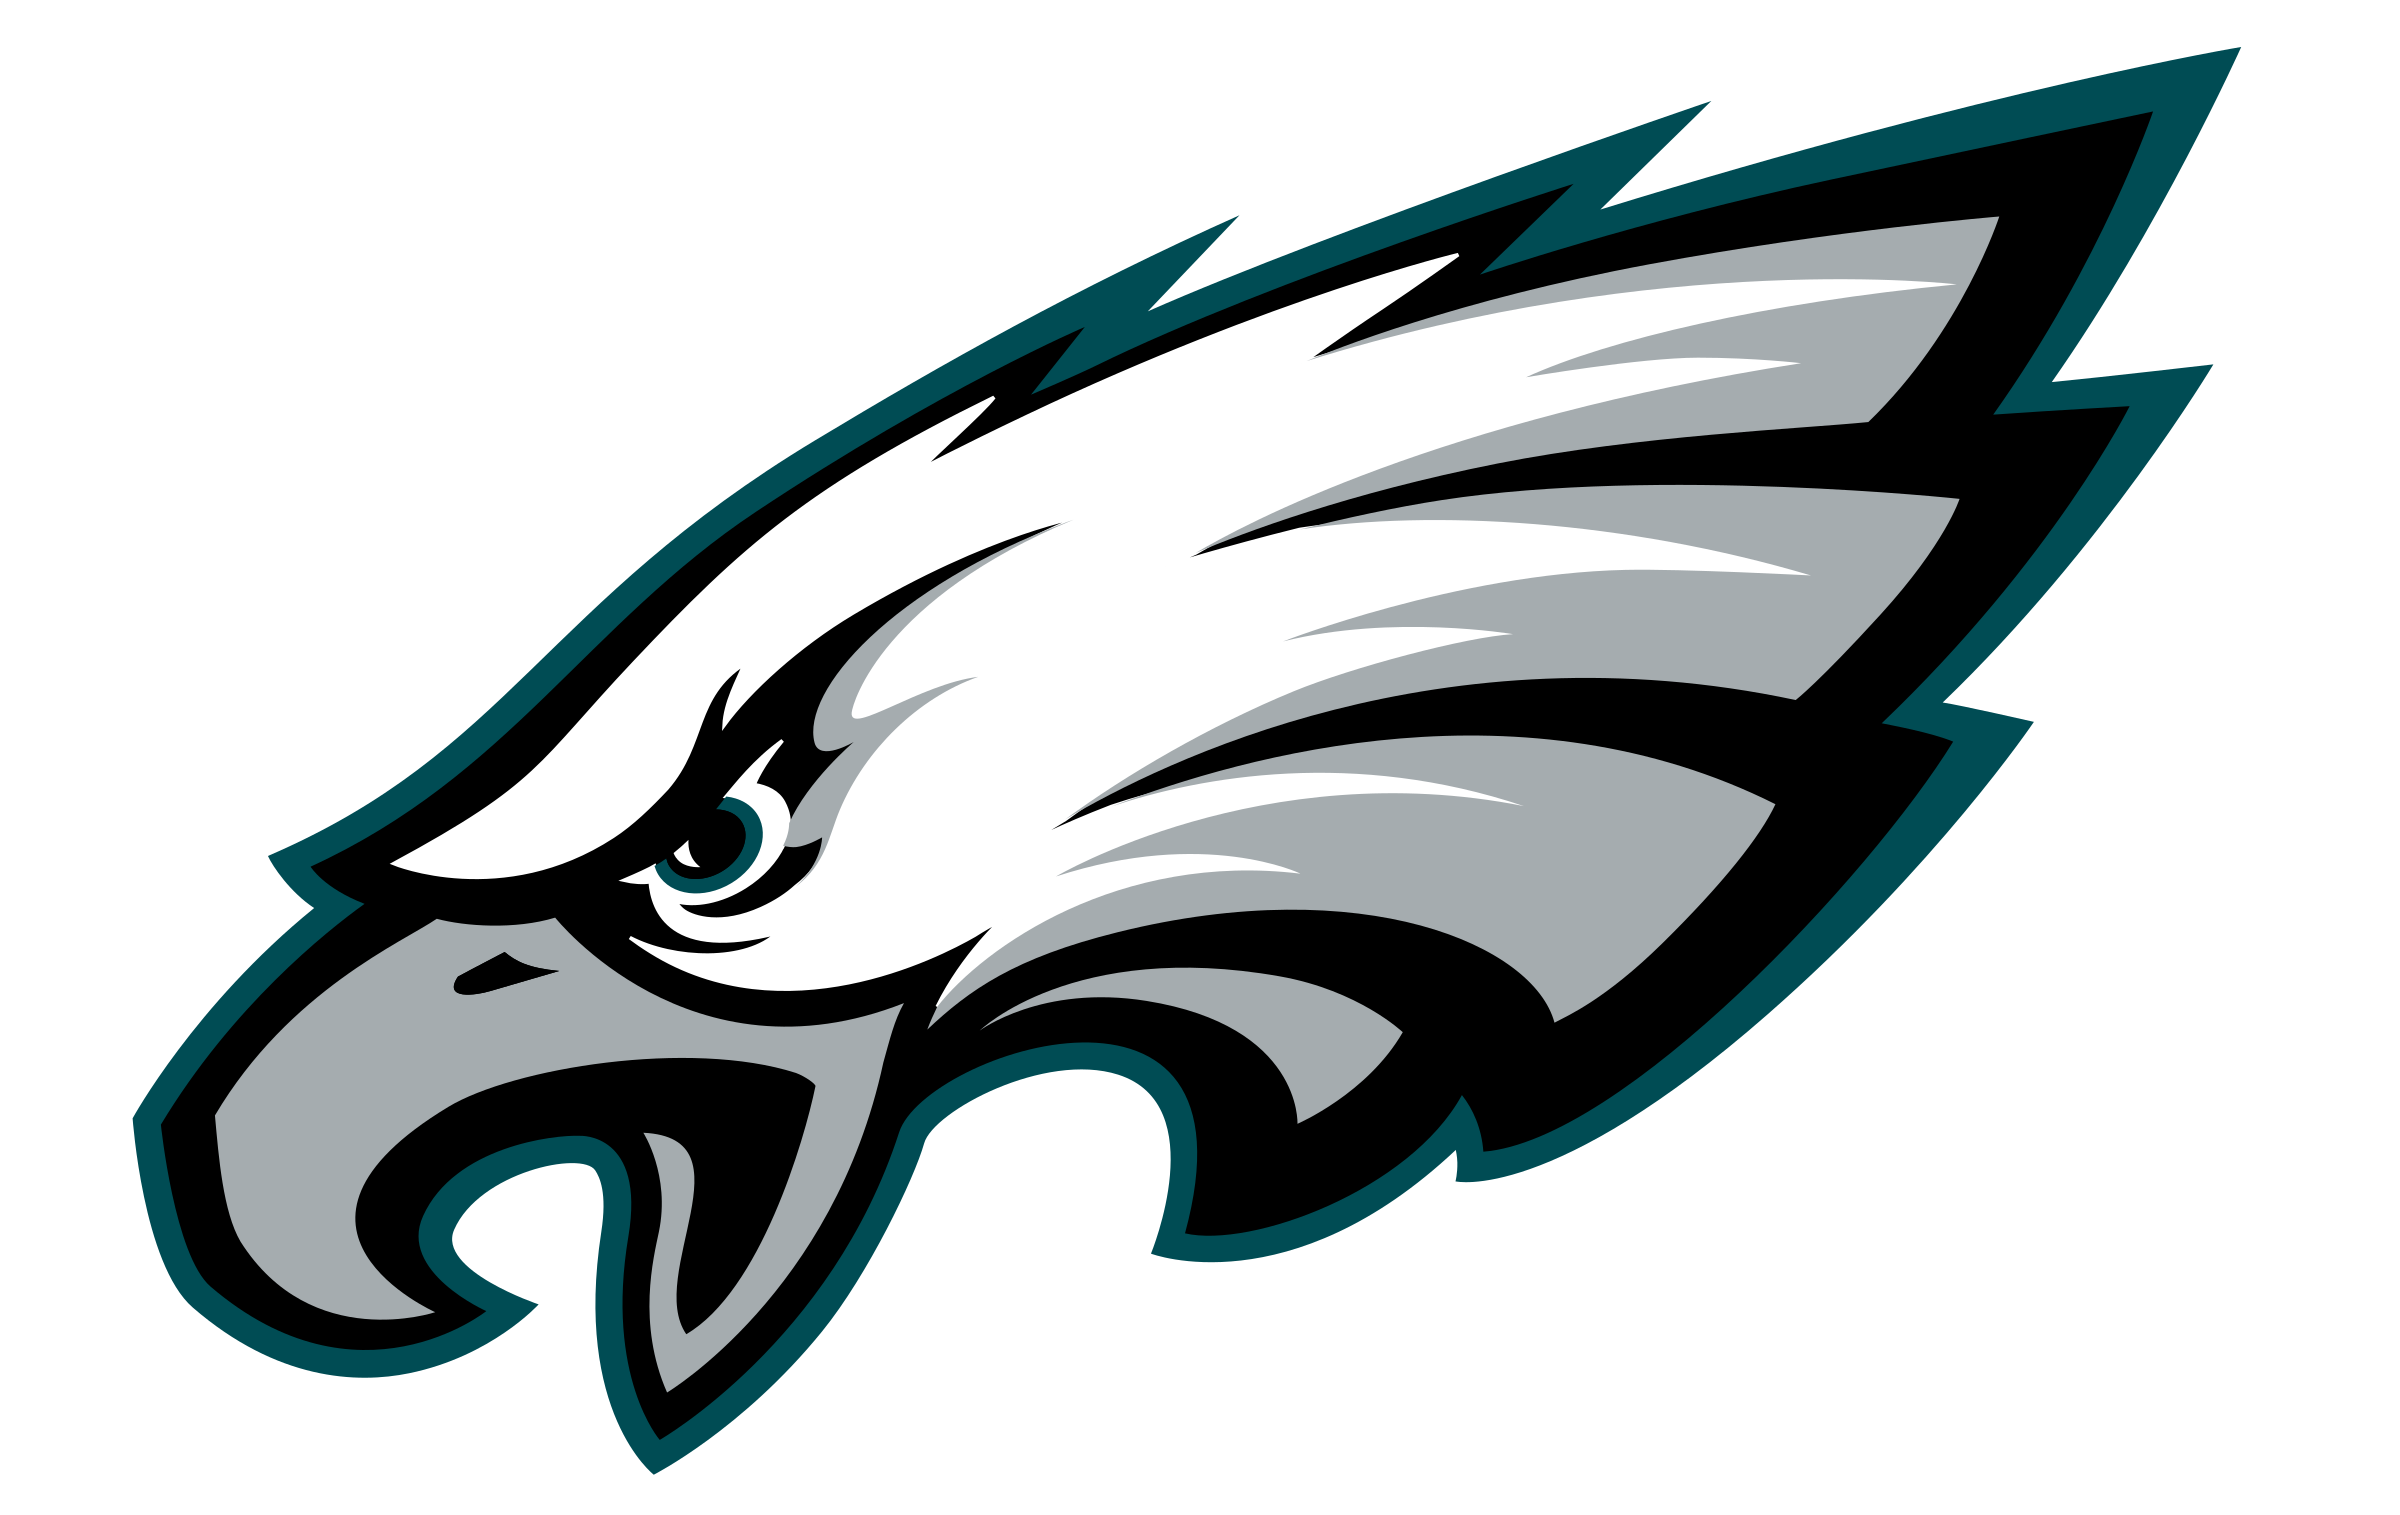 Eagle badge png. Philadelphia eagles logo transparent